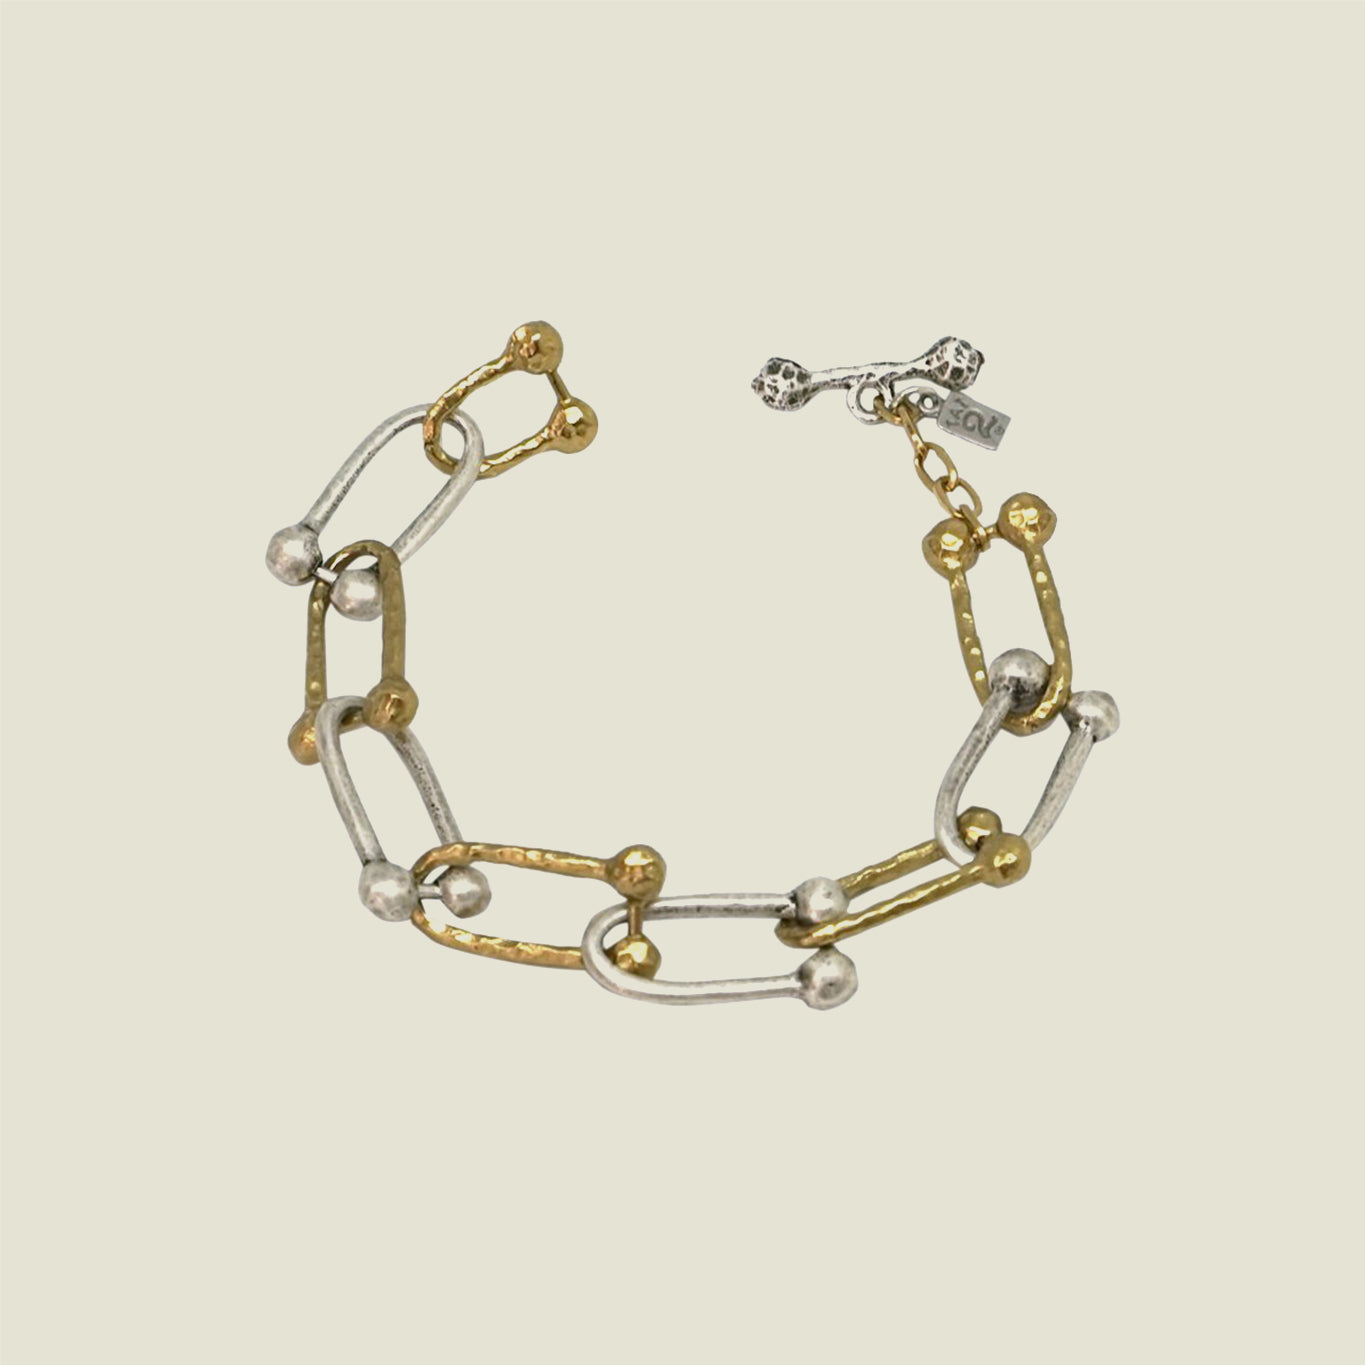 Two Tone Horseshoe Link Bracelet - Blackbird General Store